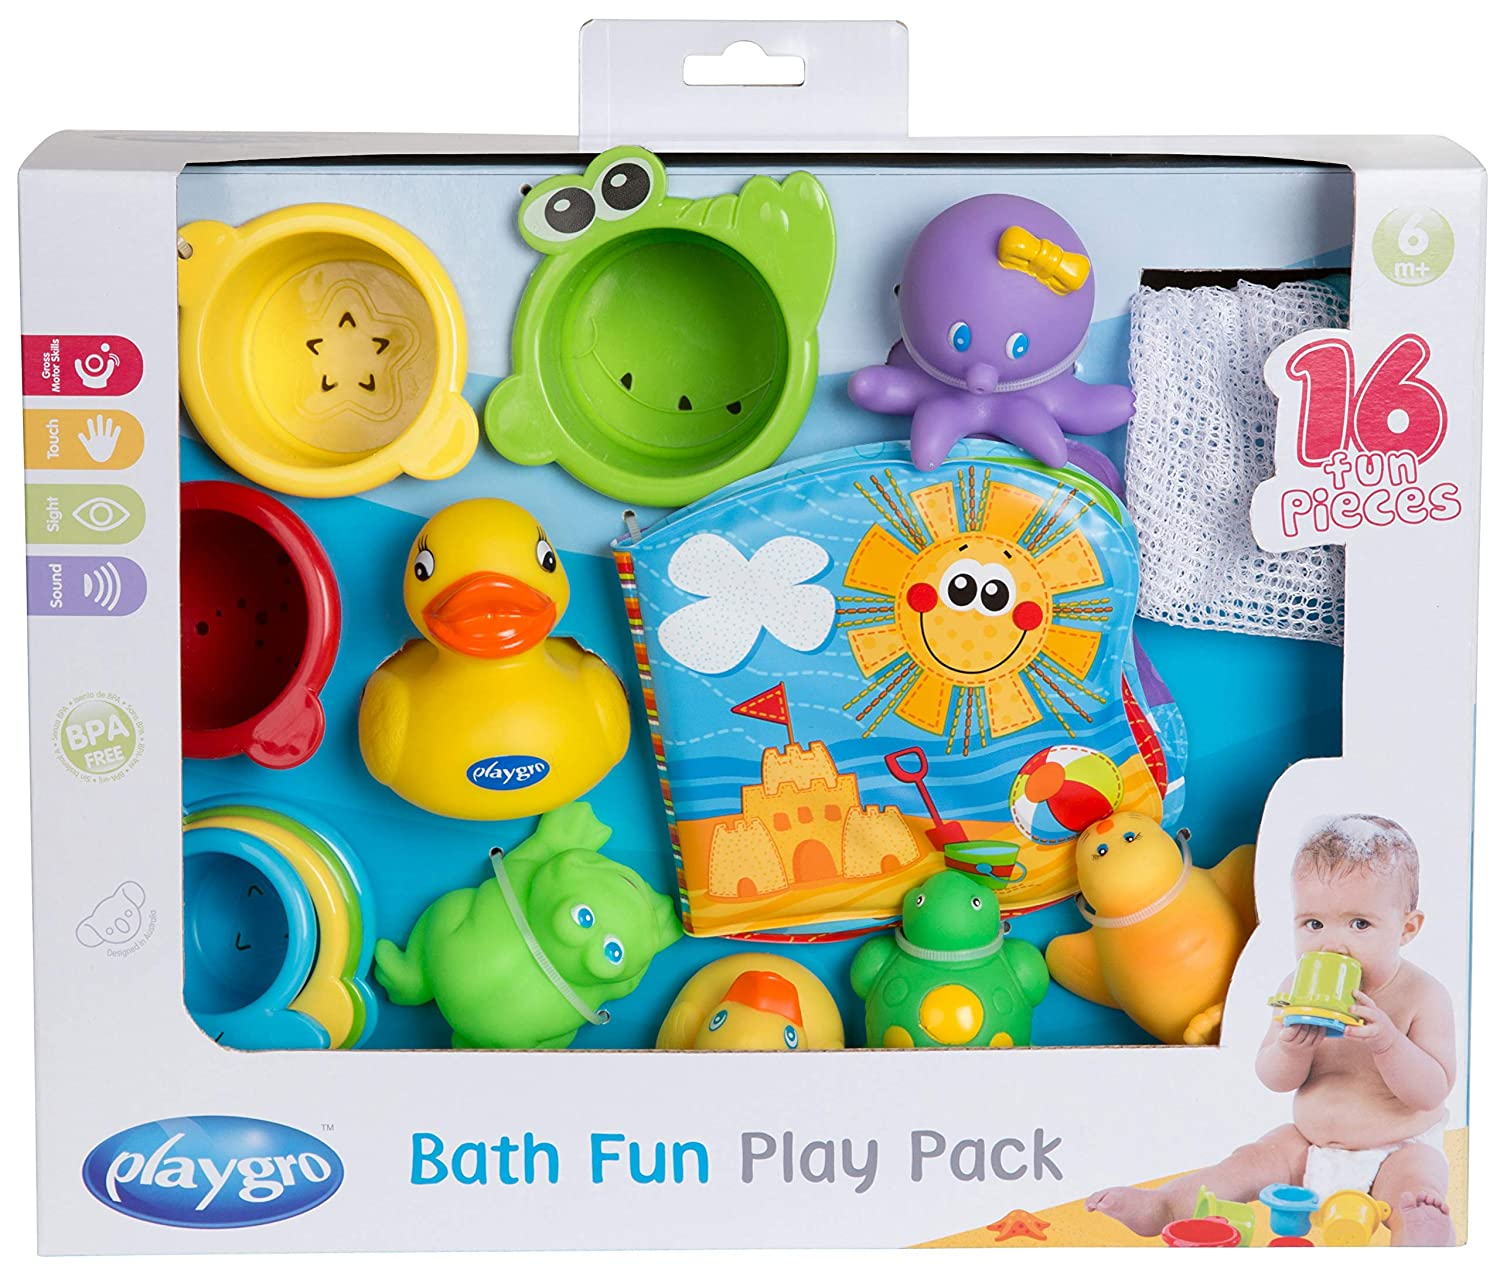 Playgro Bath Fun Play Pack 0182933